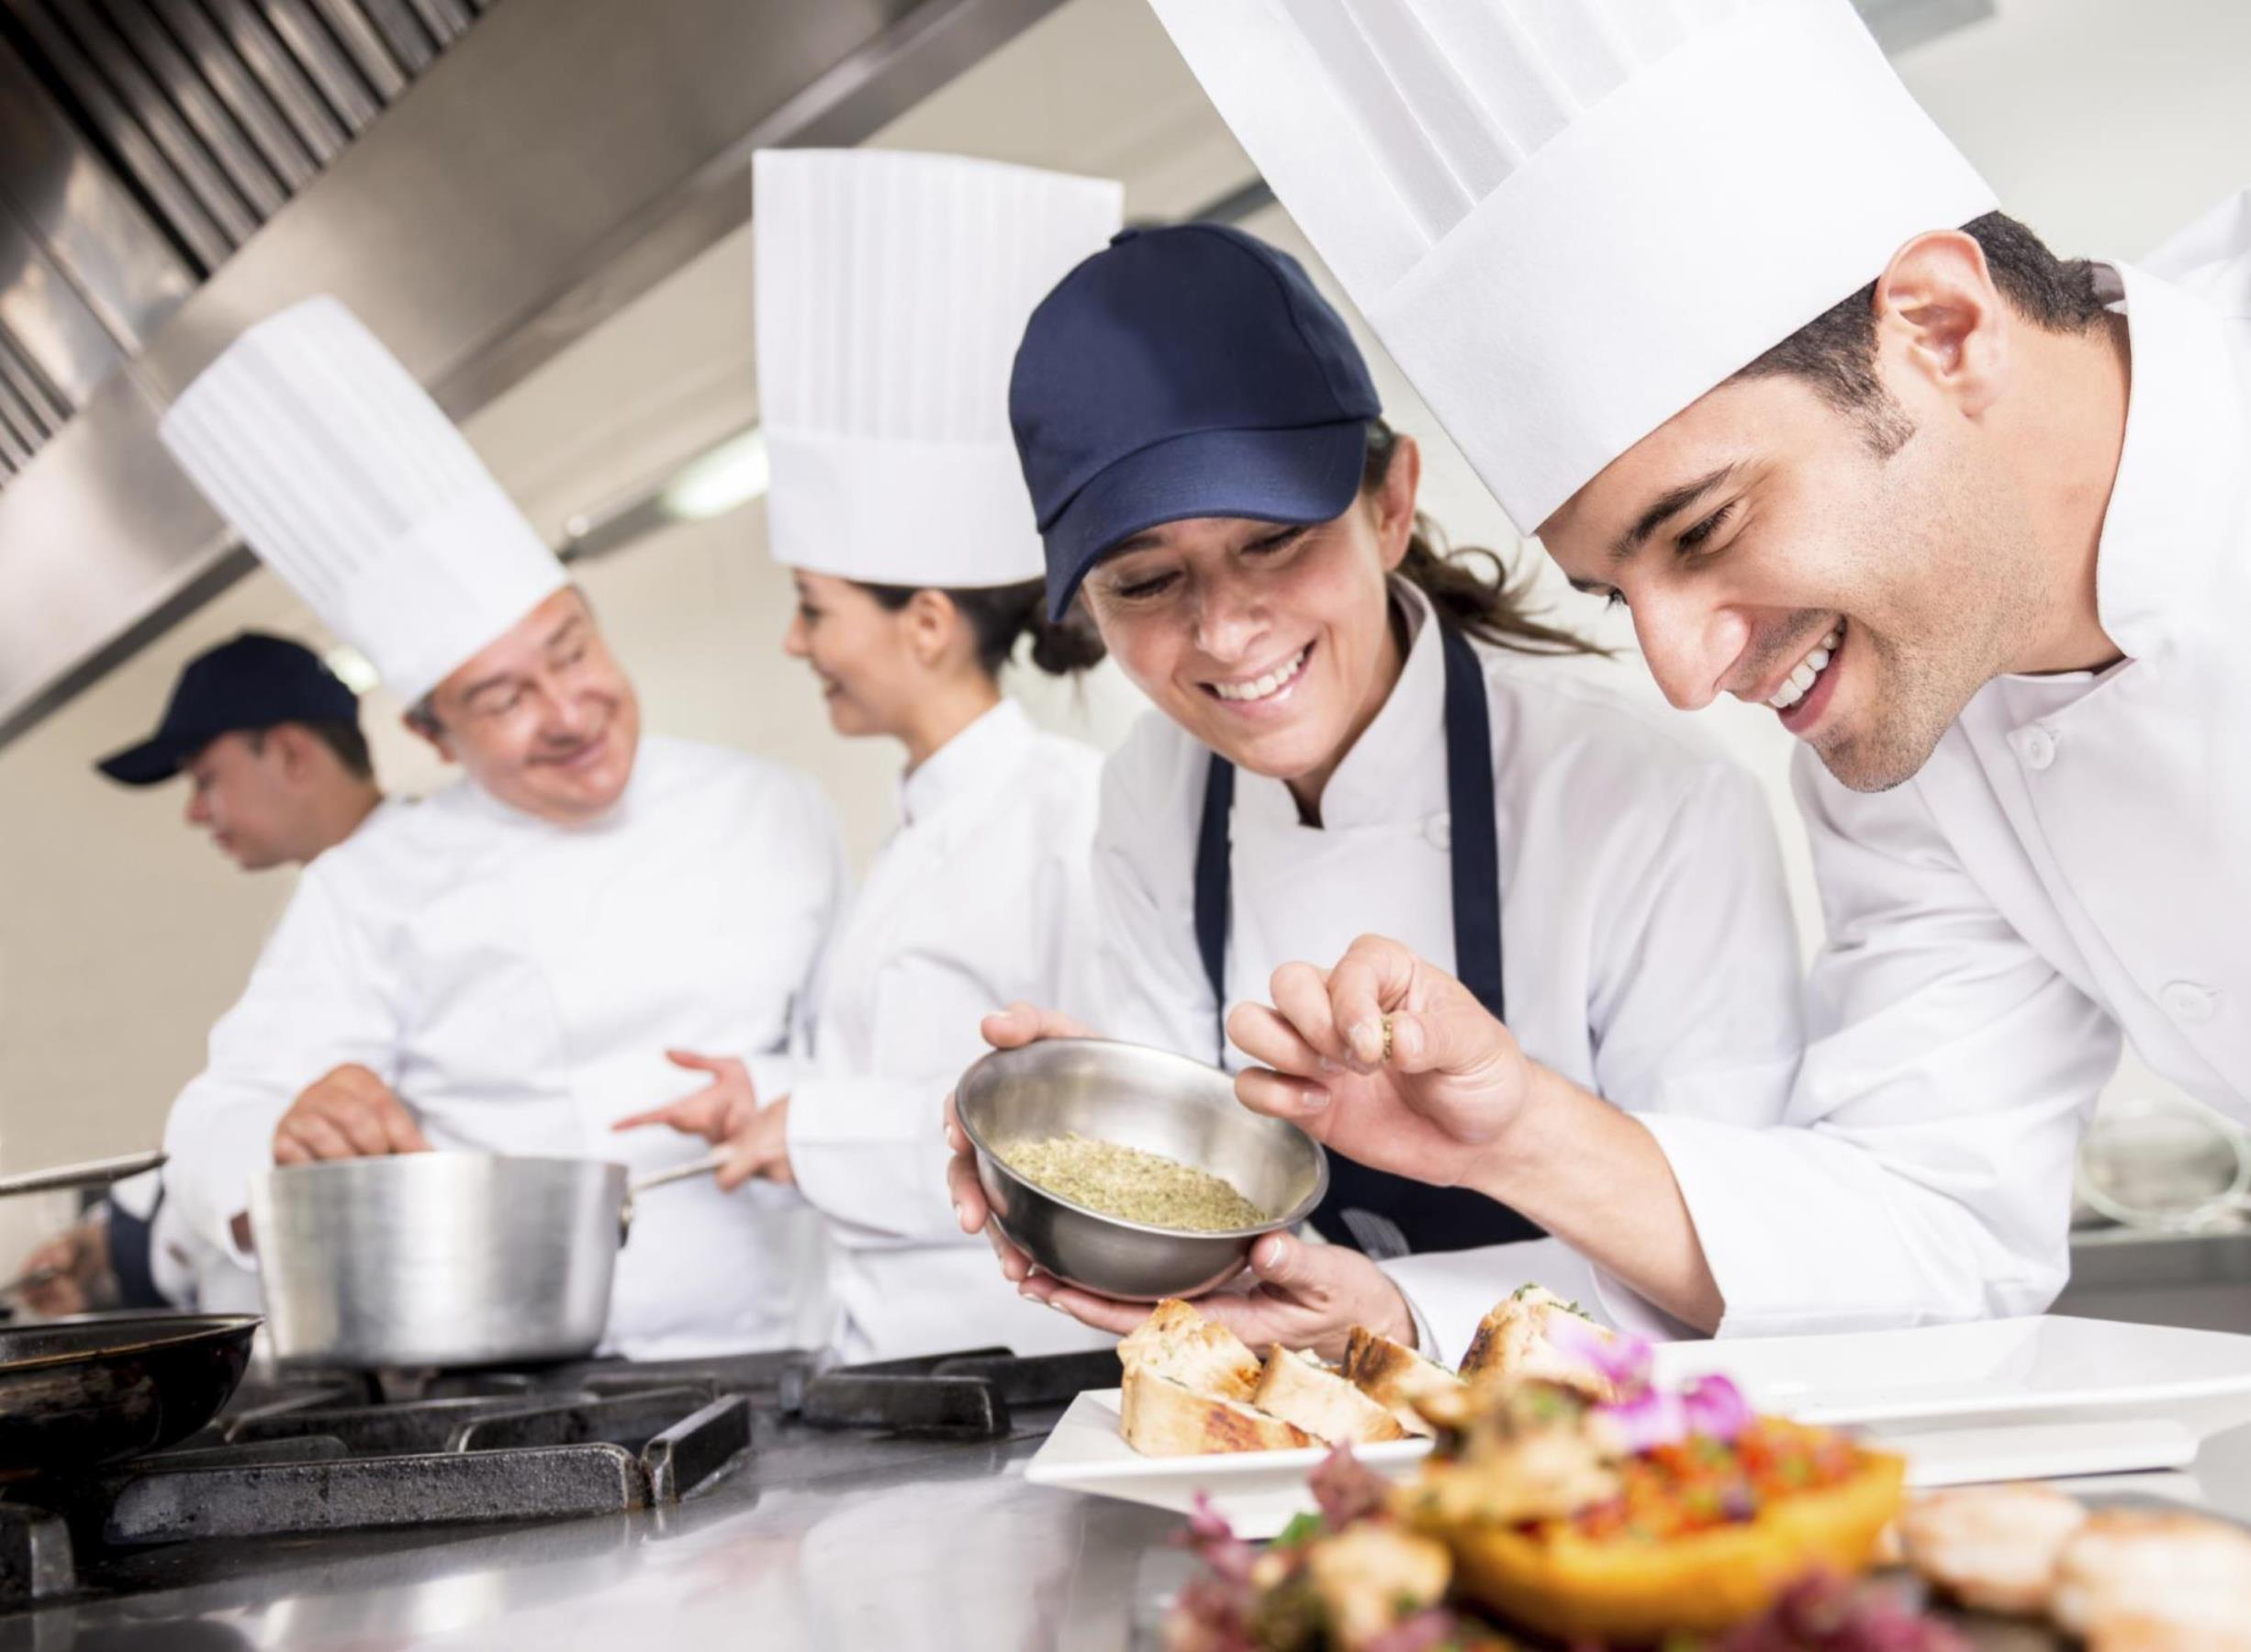 How To Manage The Restaurant Staff